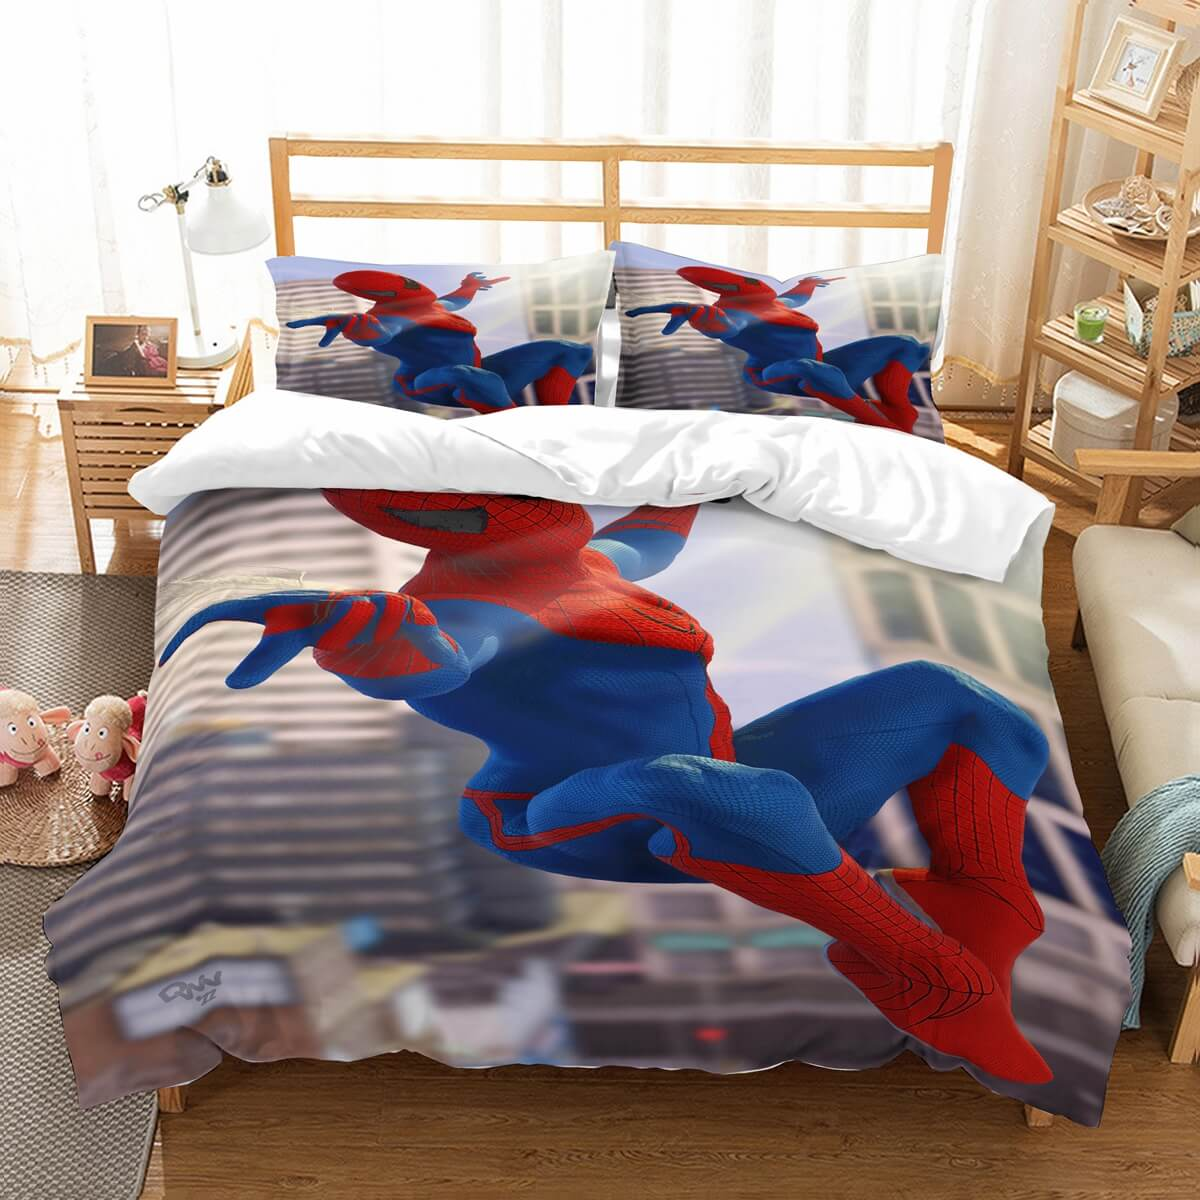 3D Customize Spider Man Bedding Set Duvet Cover Set Bedroom Set Bedlinen